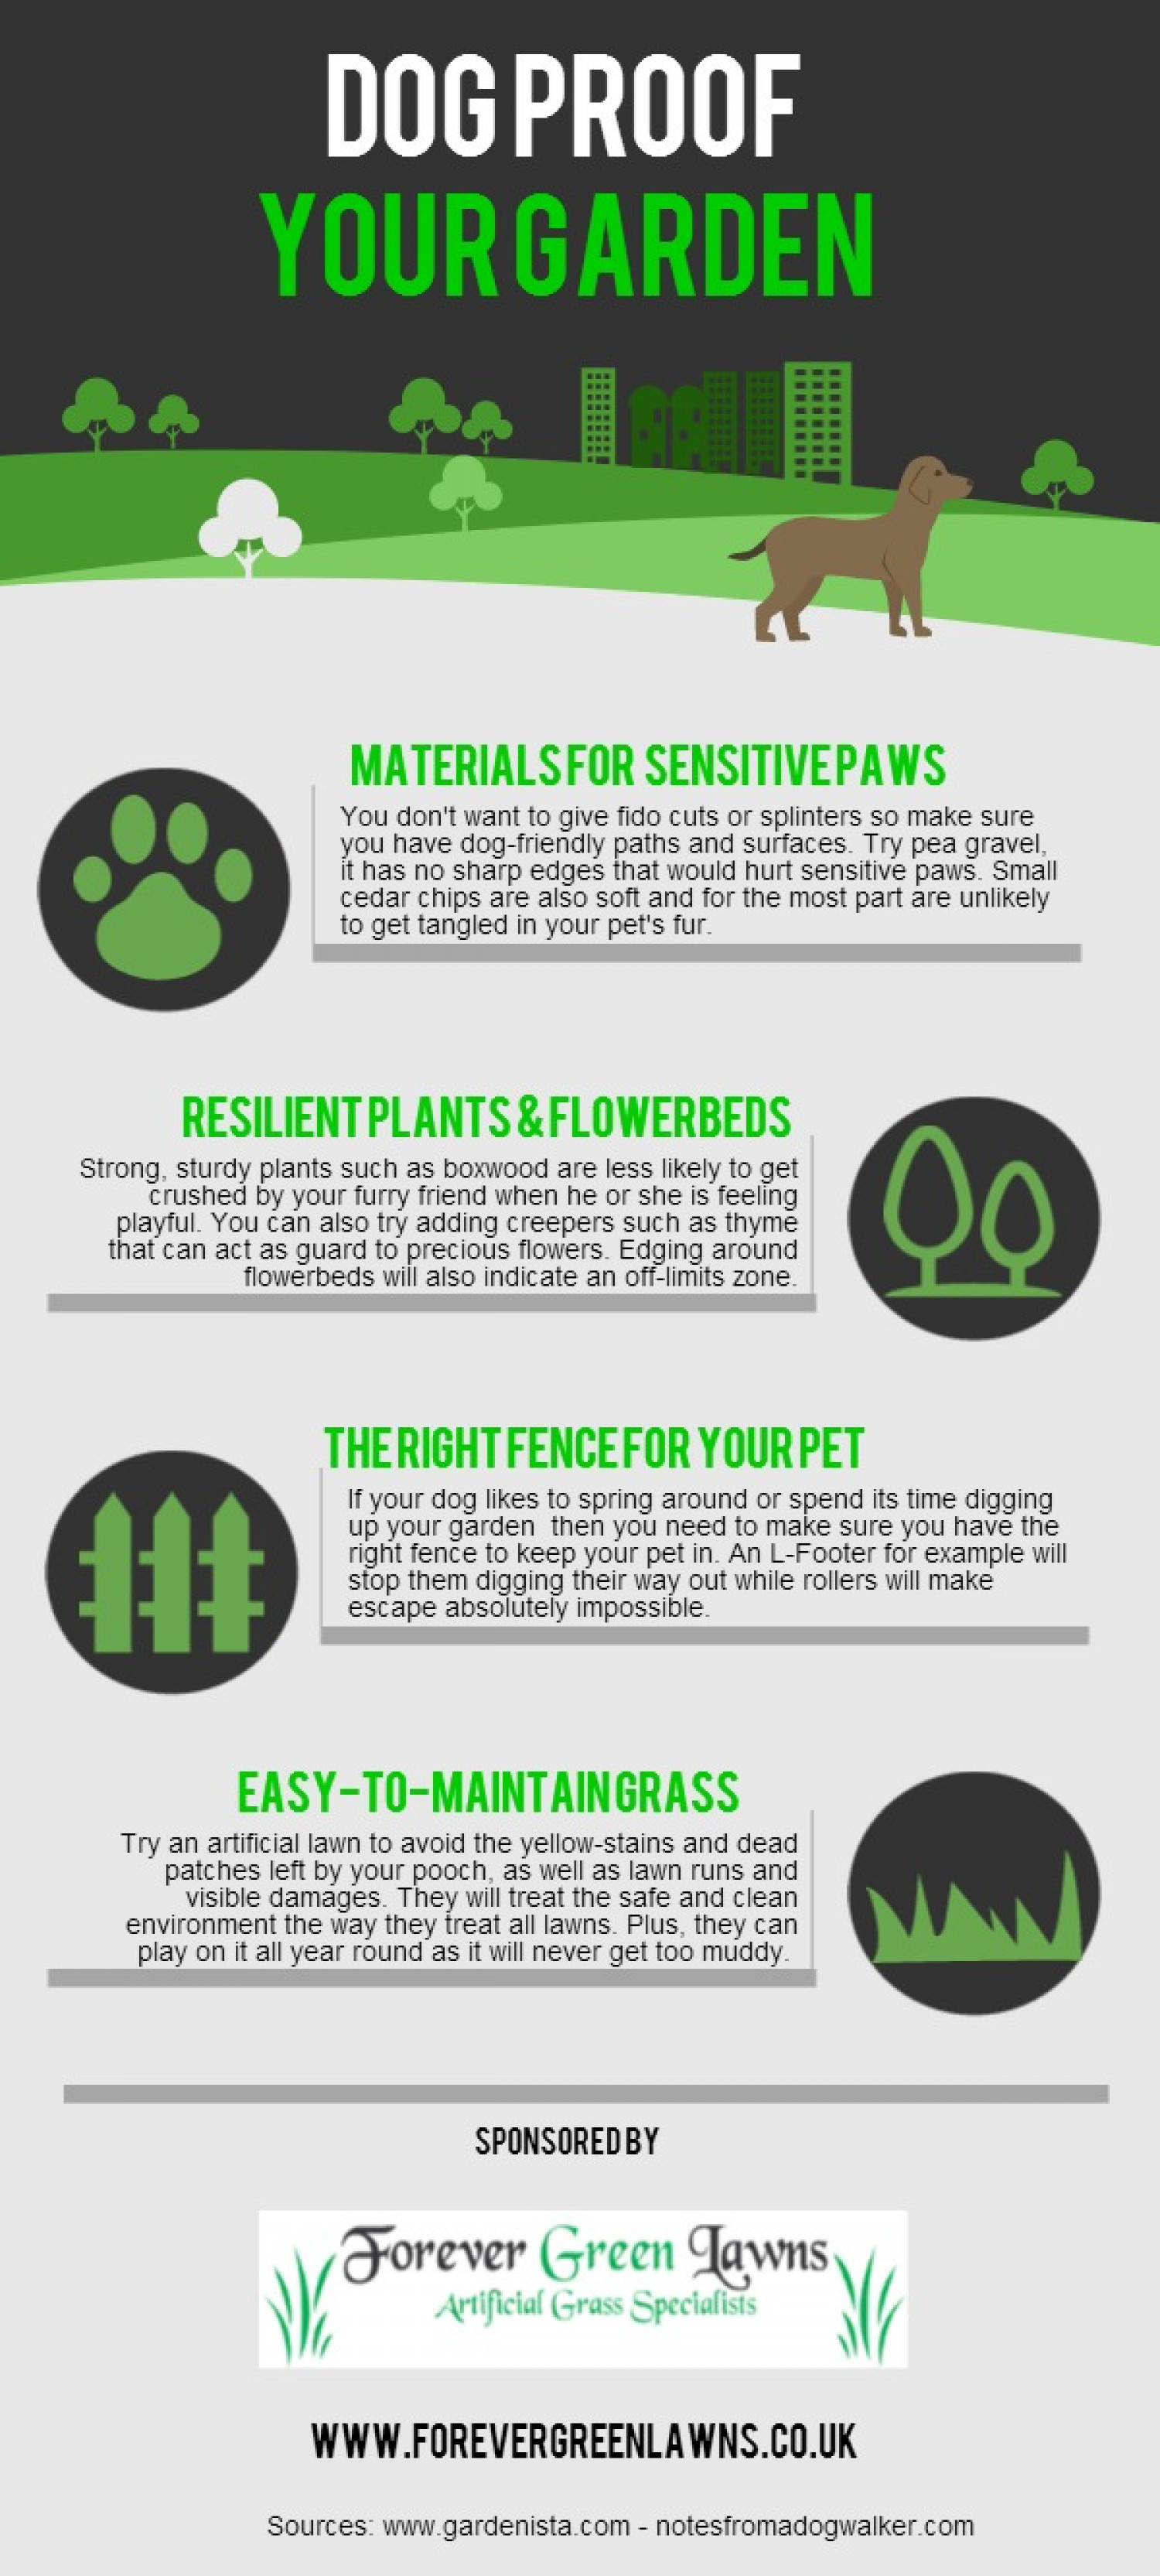 Dog Proof Your Garden Infographic